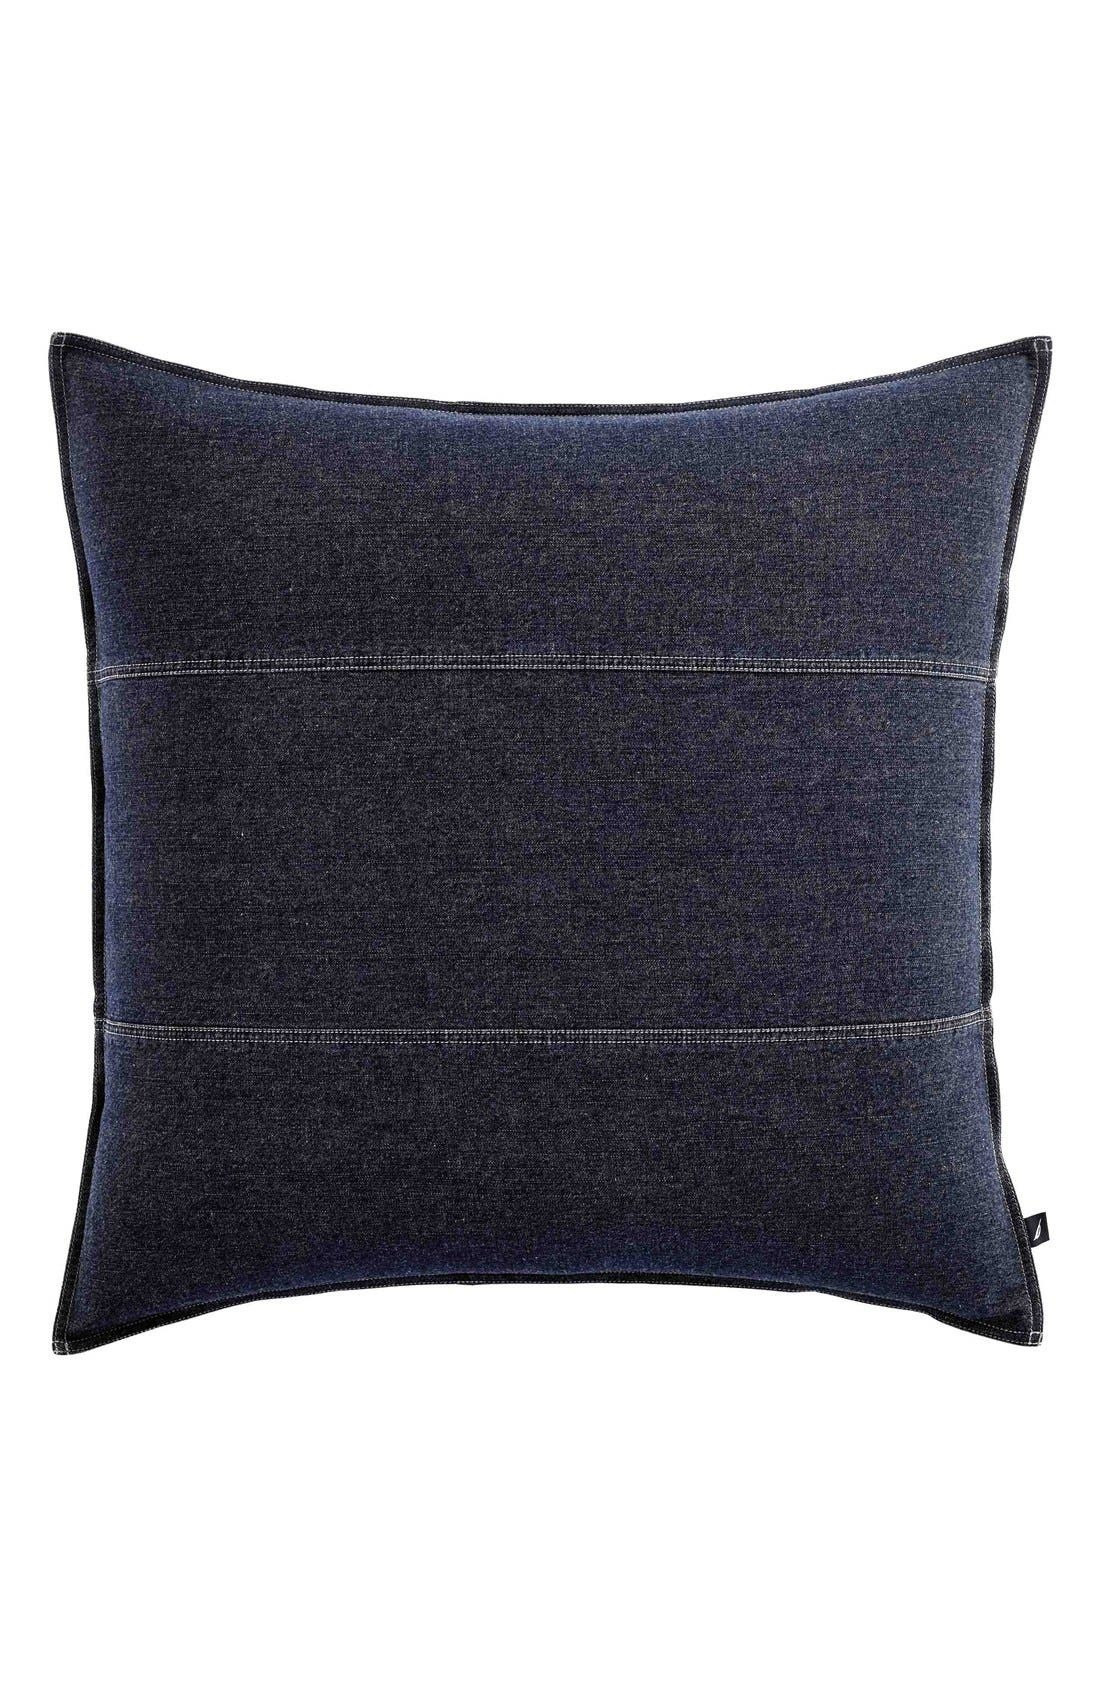 'Seaward' Euro Sham,                         Main,                         color, Denim Blue